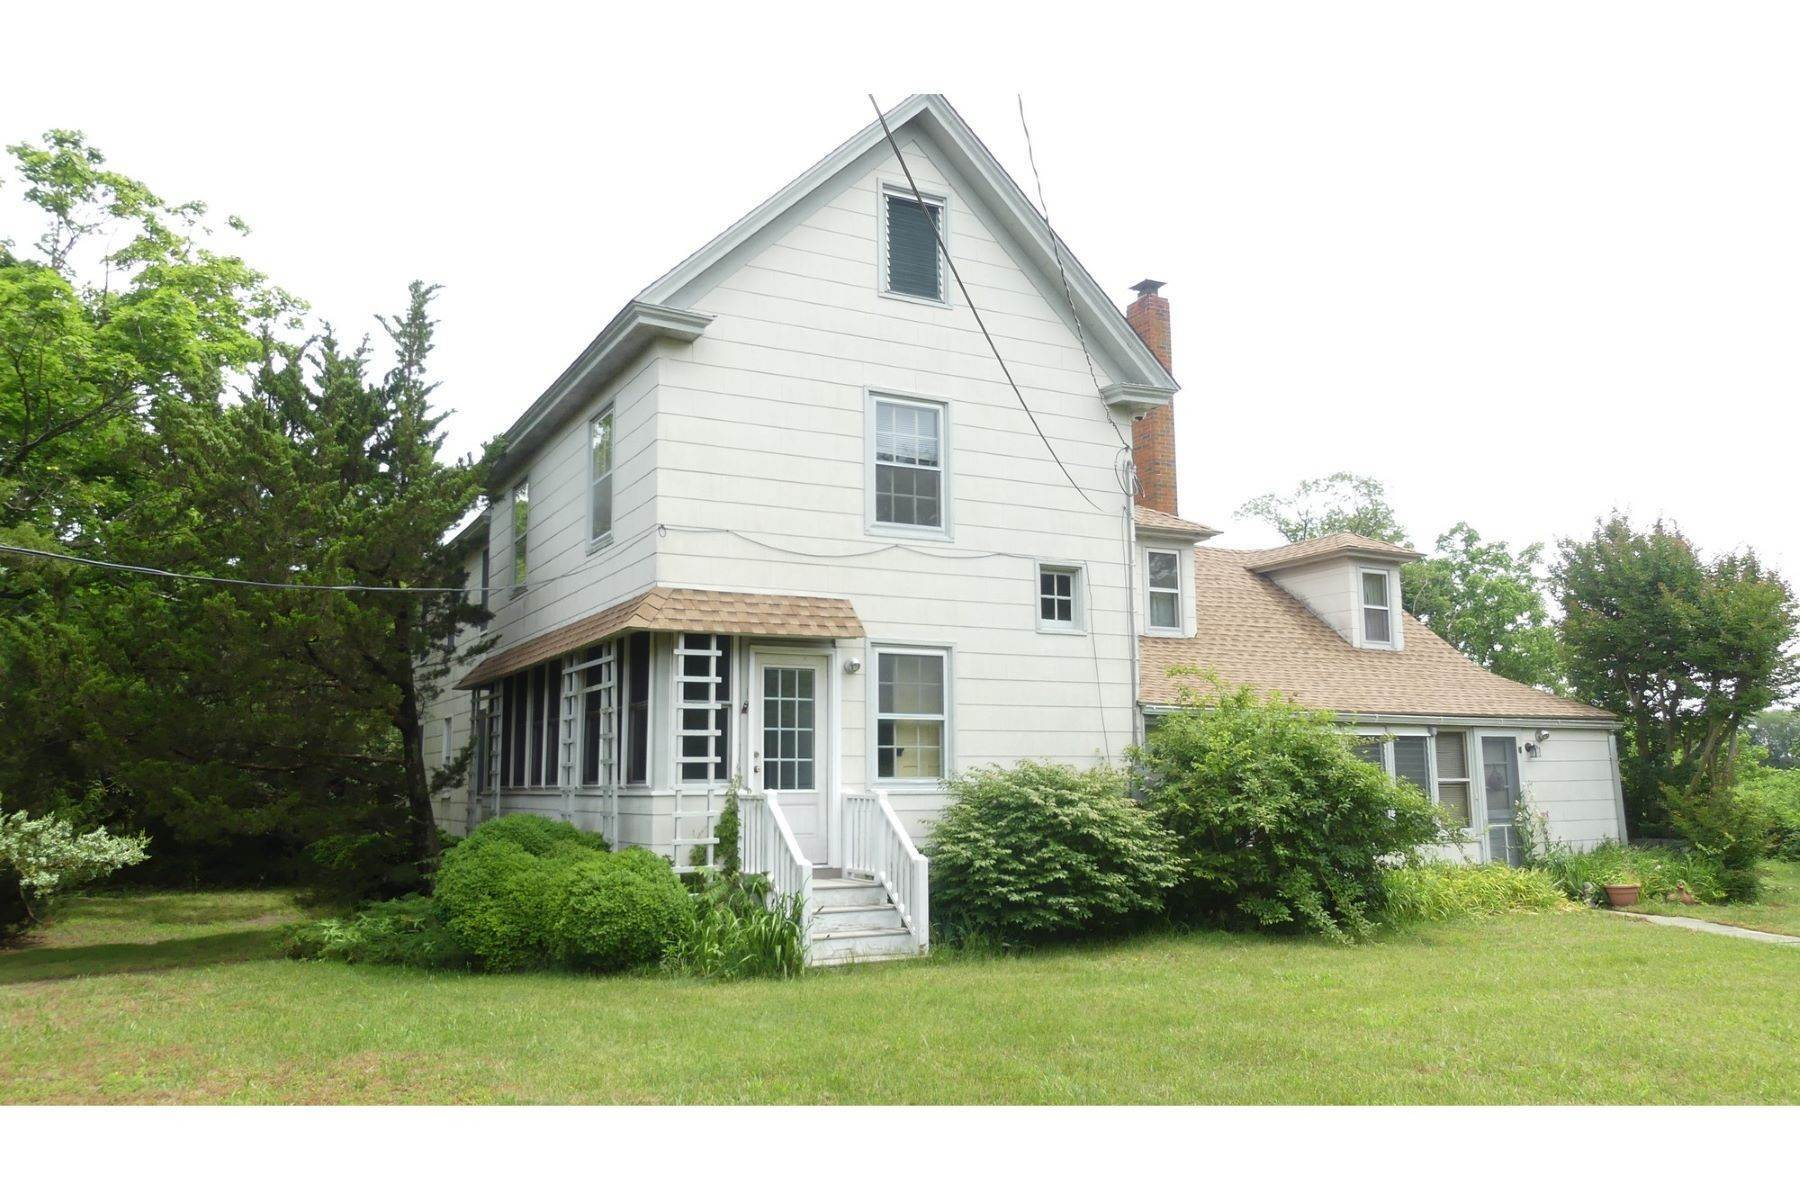 Single Family Homes for Sale at Land with Historic Home 2388 & 2382 Route 9 Ocean View, New Jersey 08230 United States